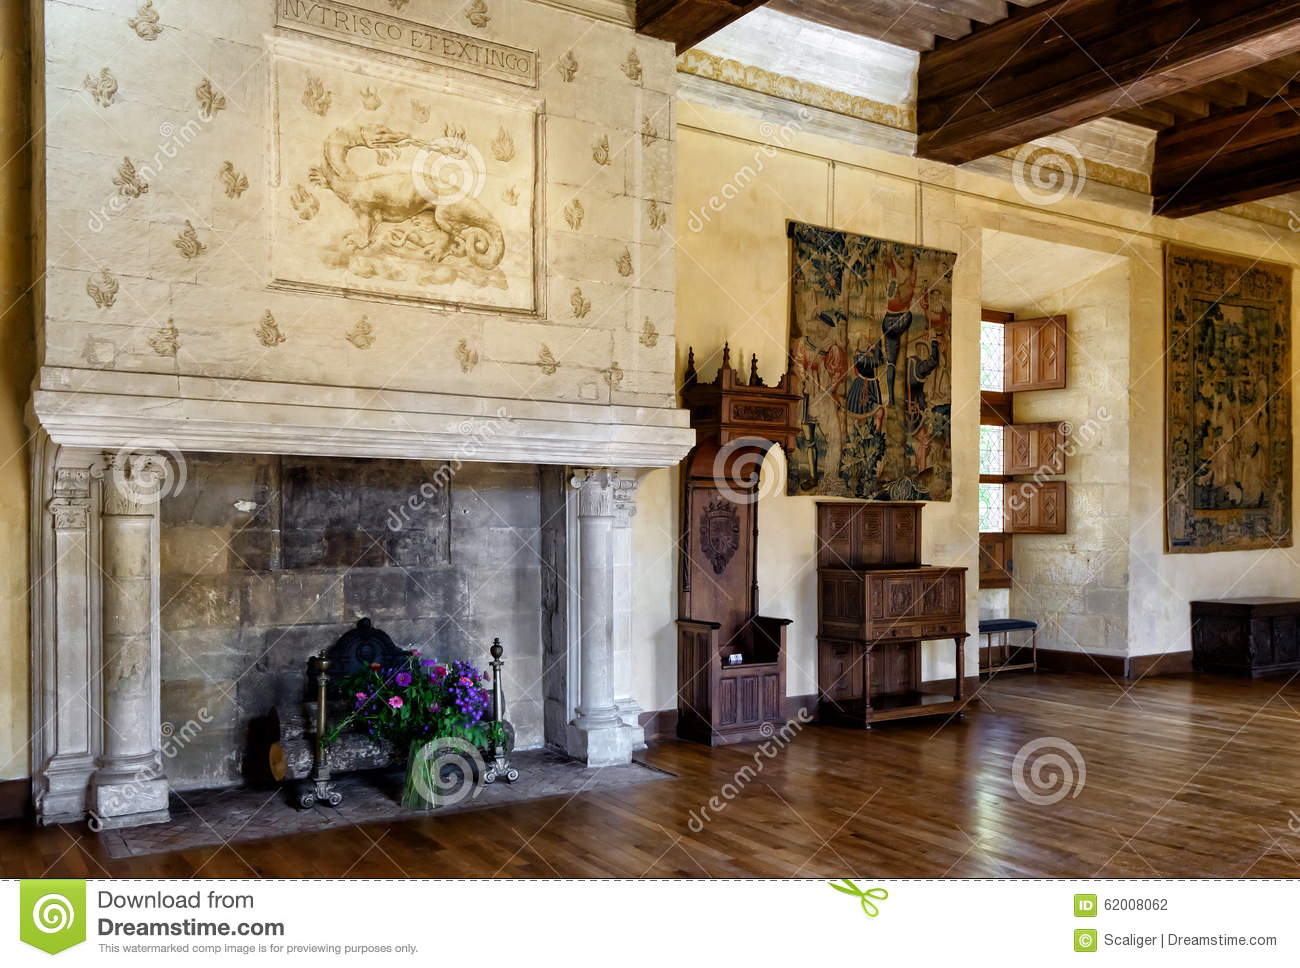 Chateau de azay le rideau int rieur france photographie for Interieur france